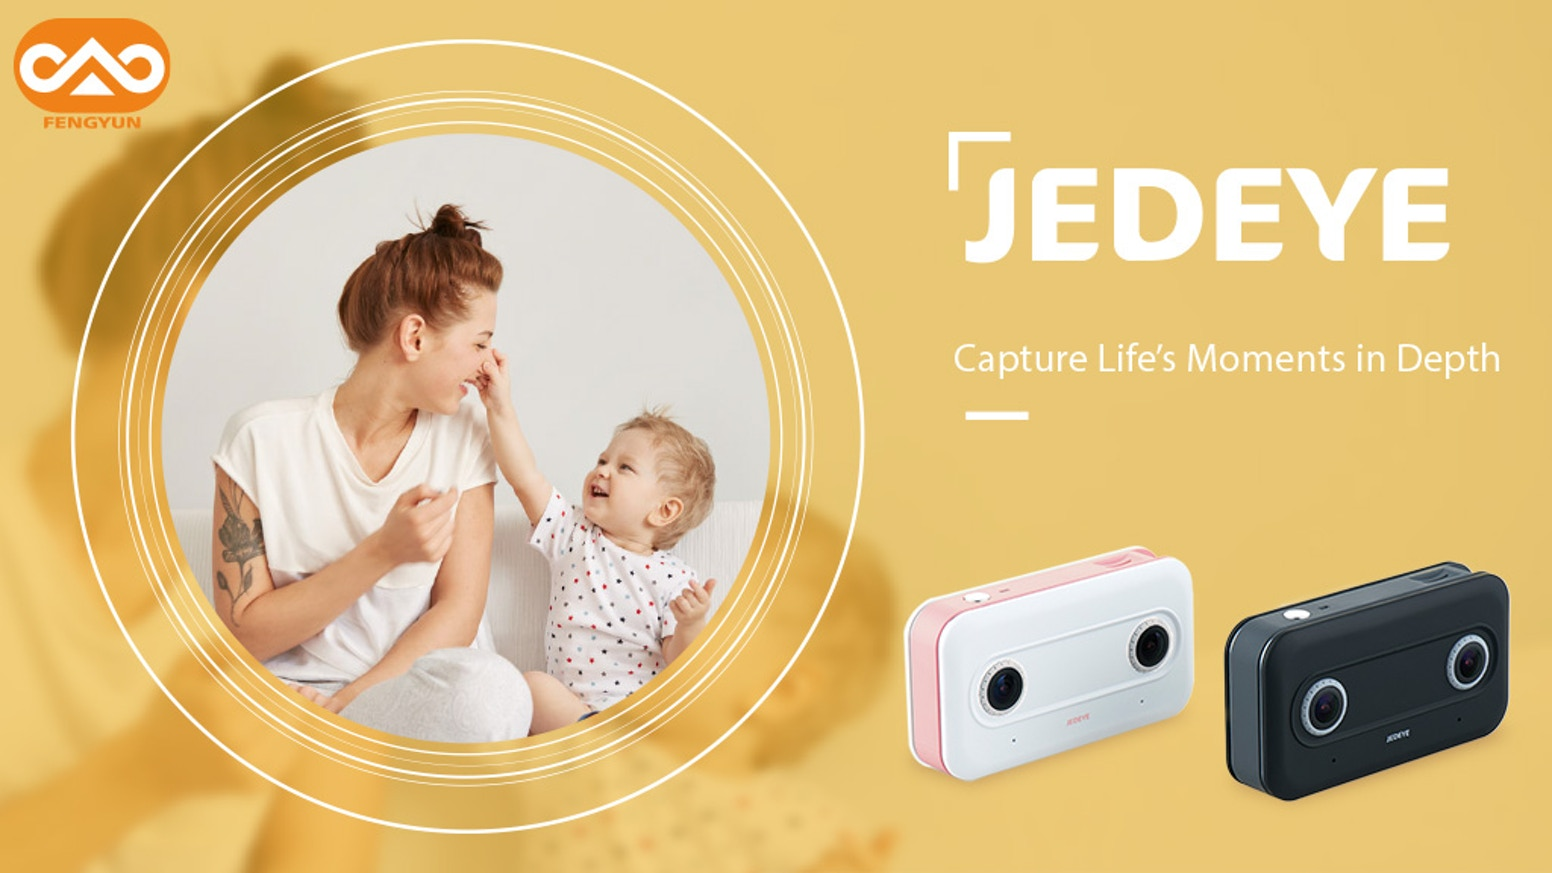 JEDEYE,Capture Life's Moments in Depth by Fengyun Vision » About